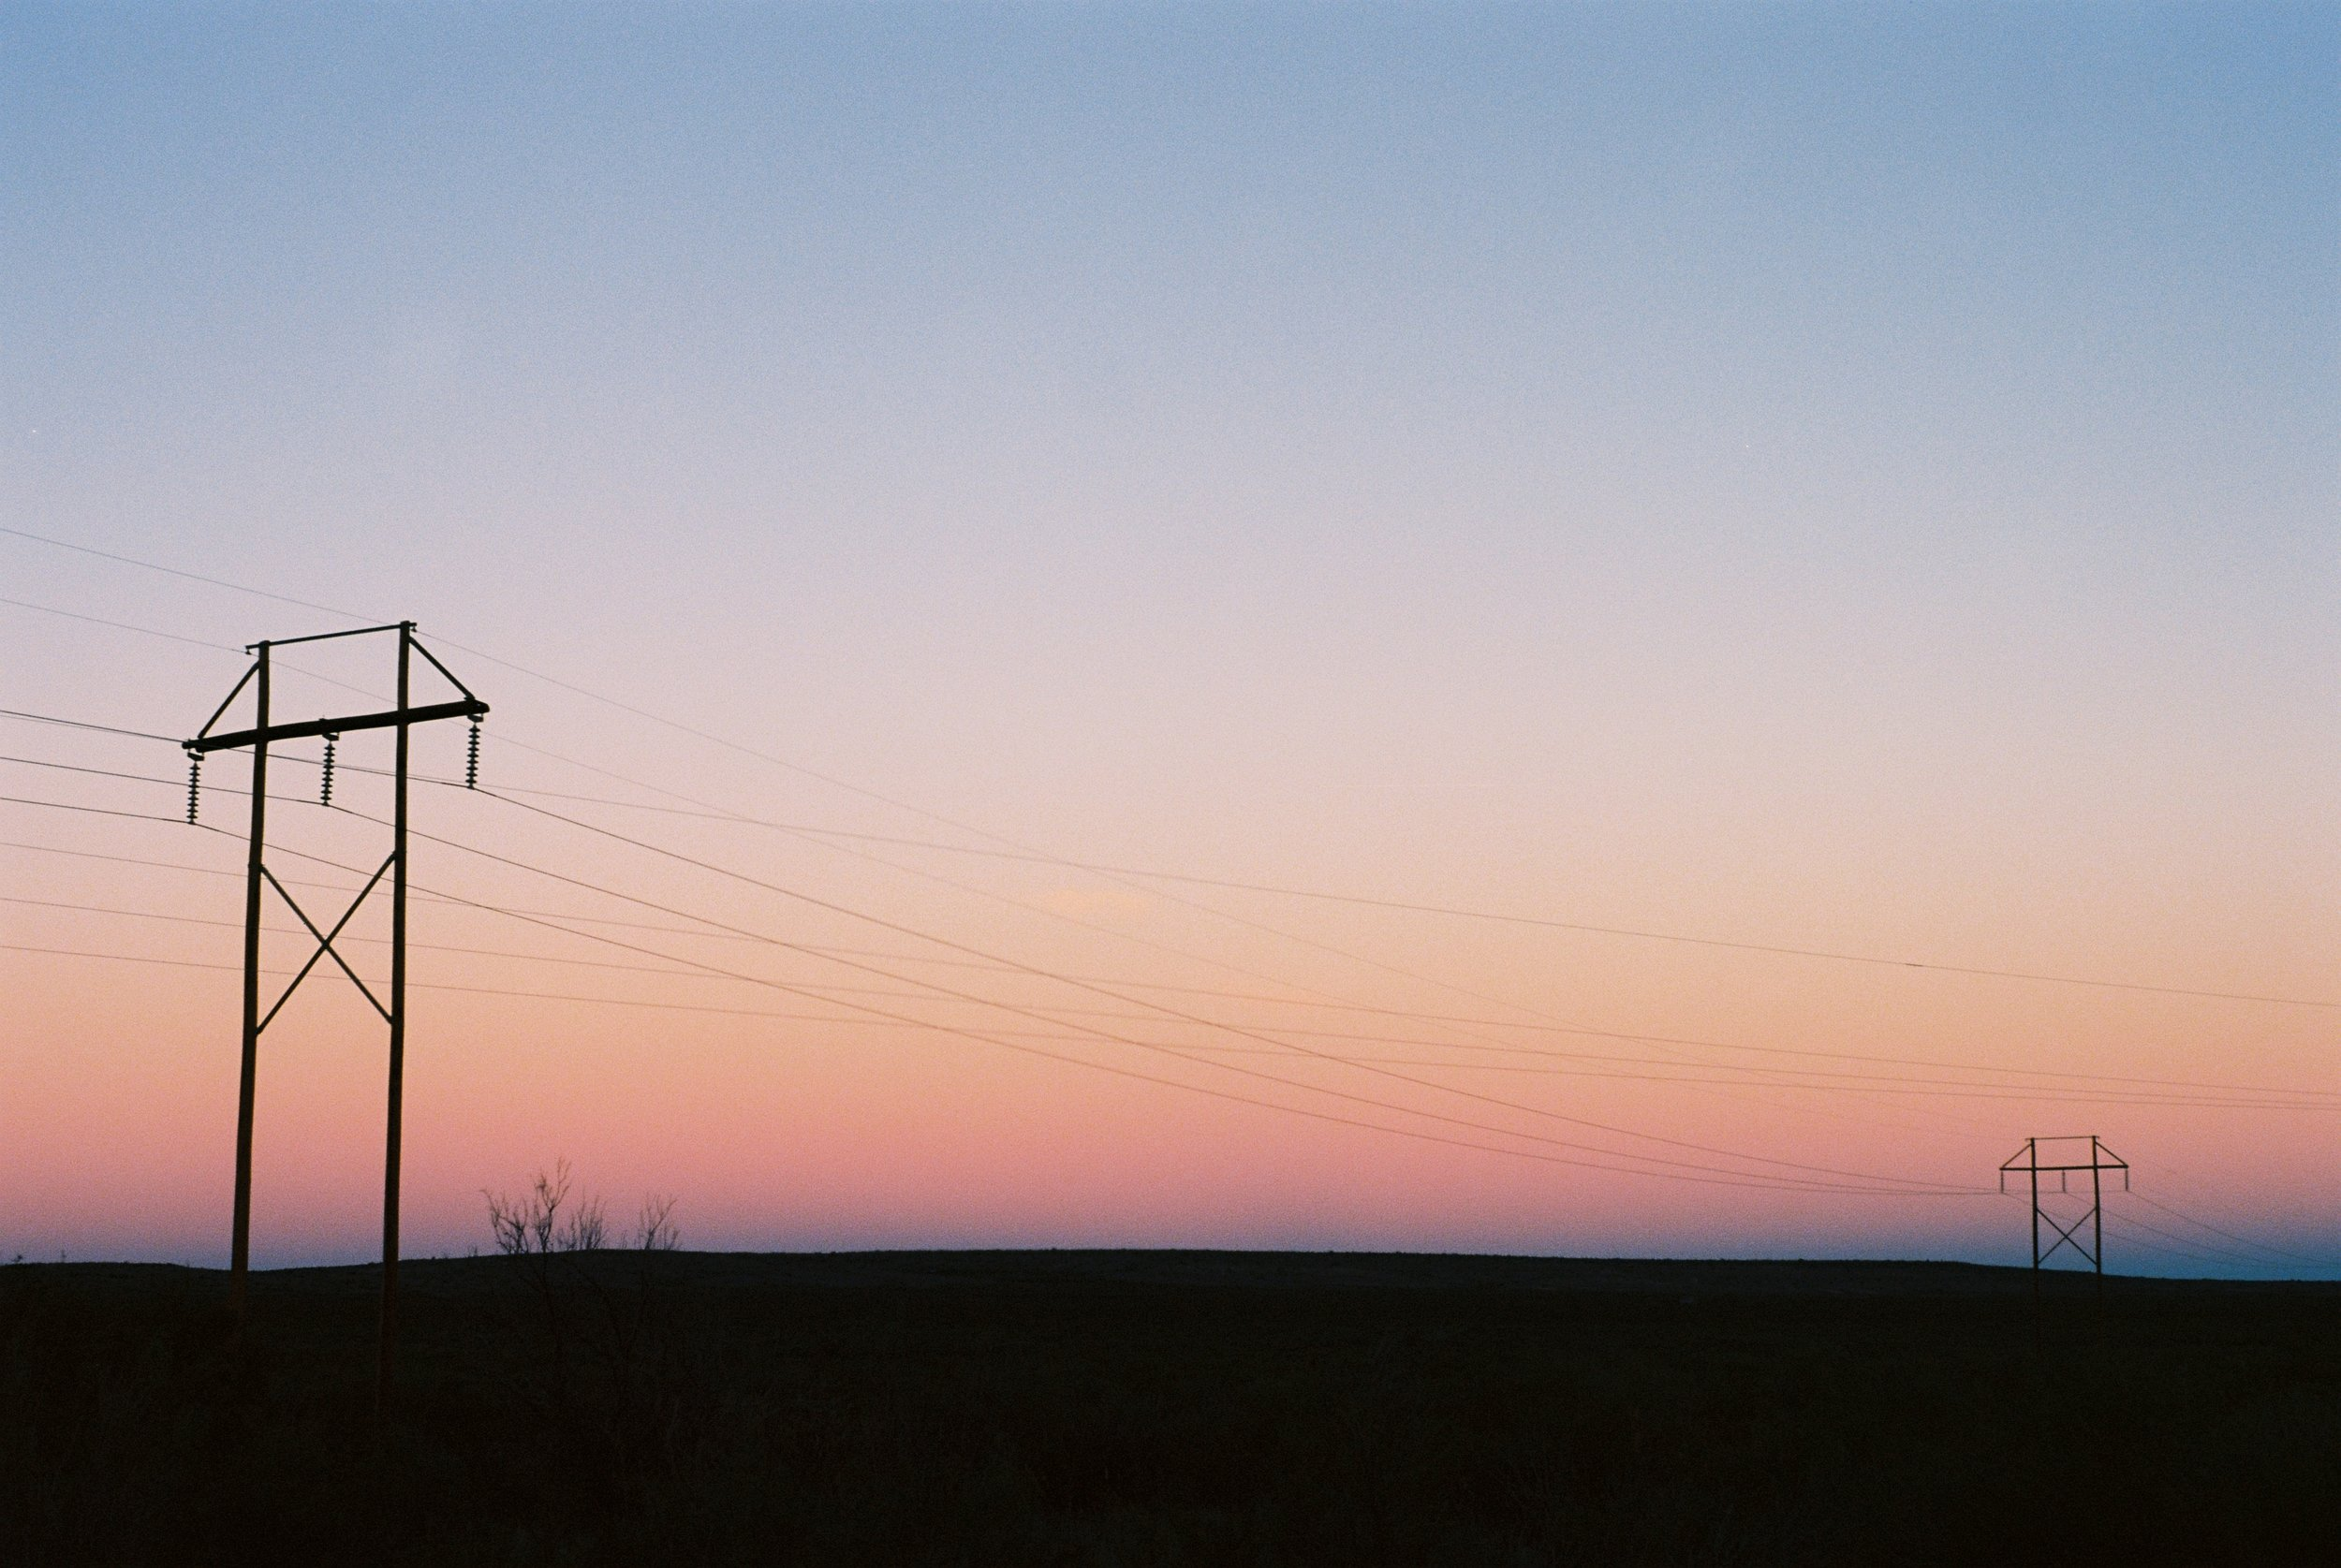 Power lines in the sunset.jpg